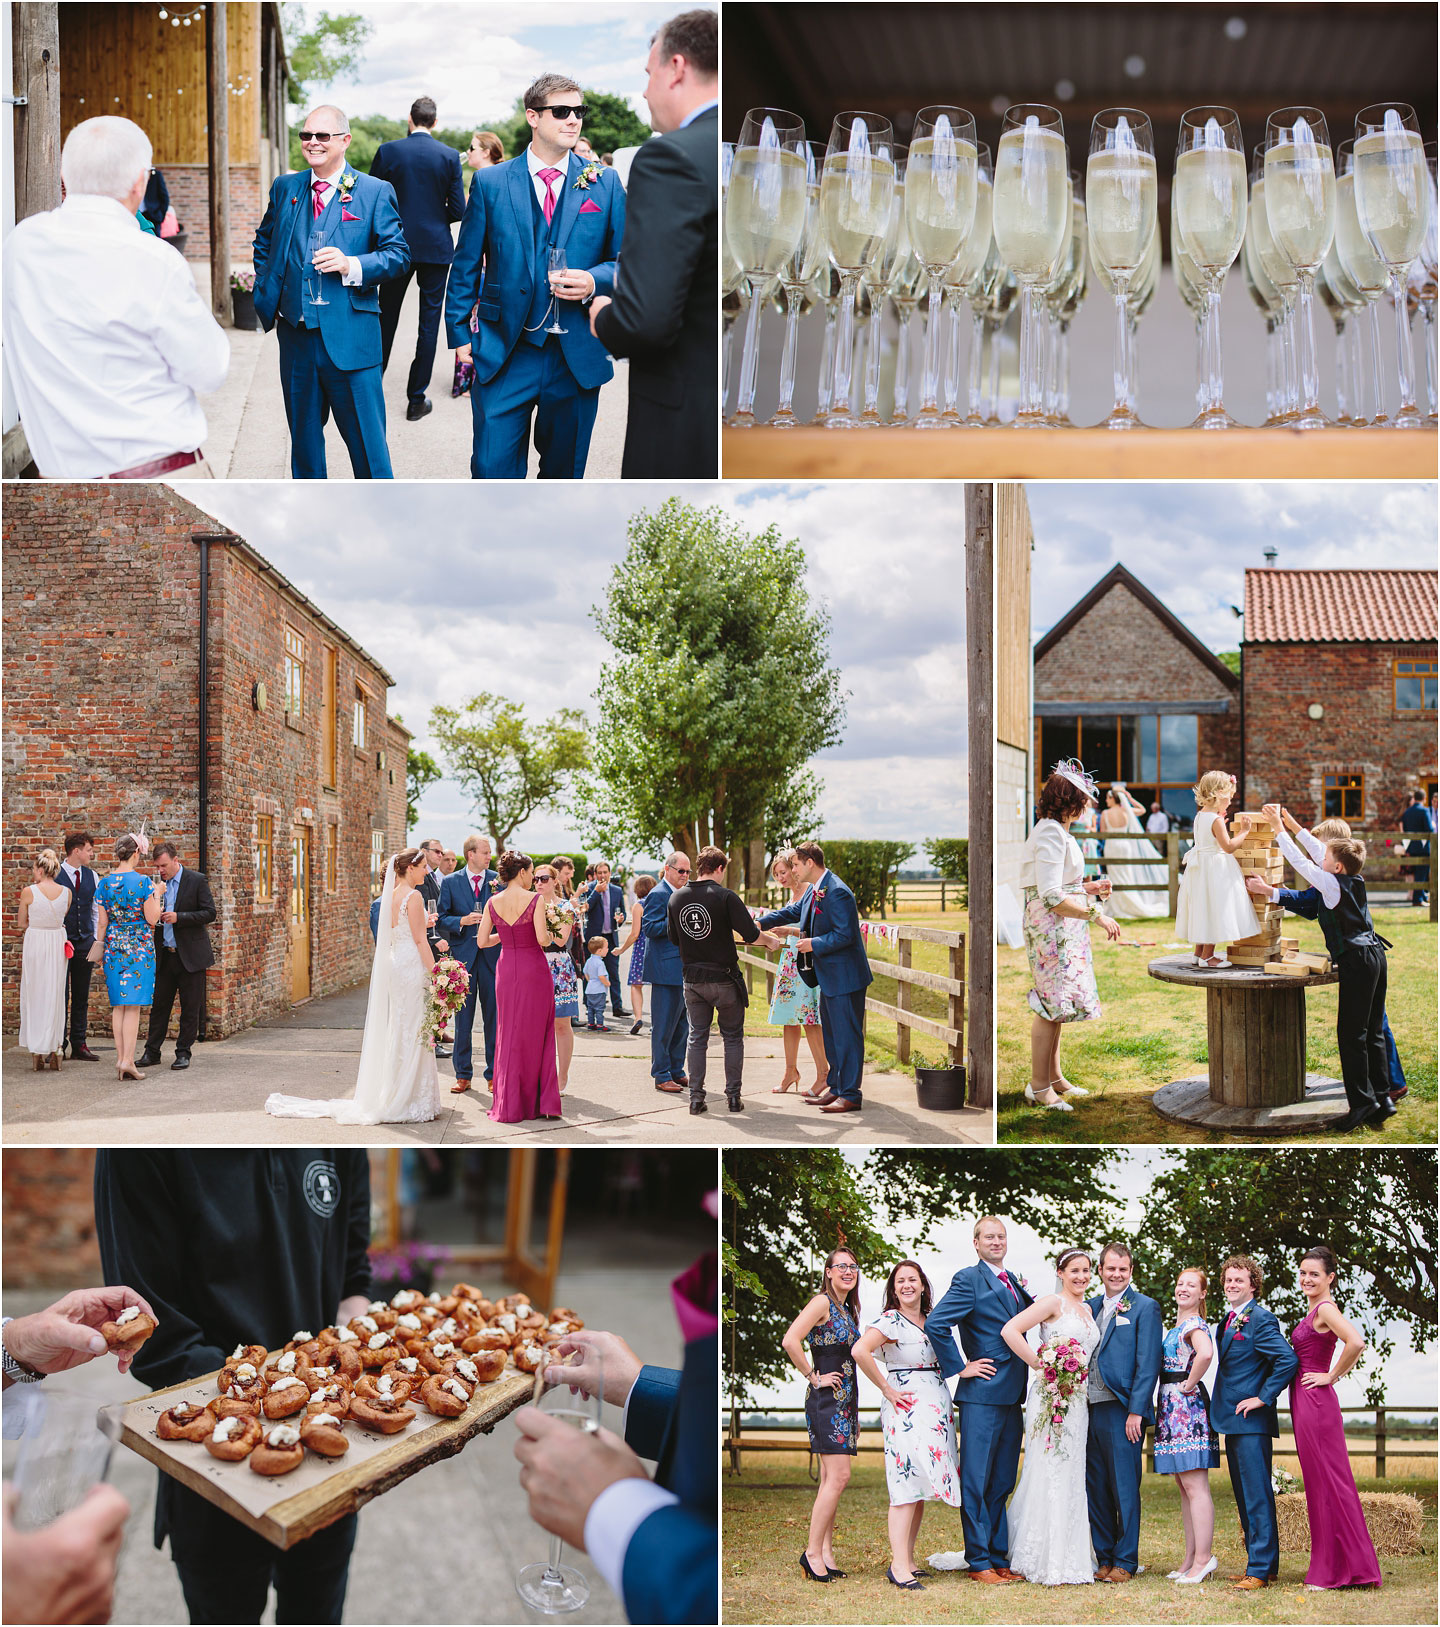 Barmbyfields Barn wedding reception images near York